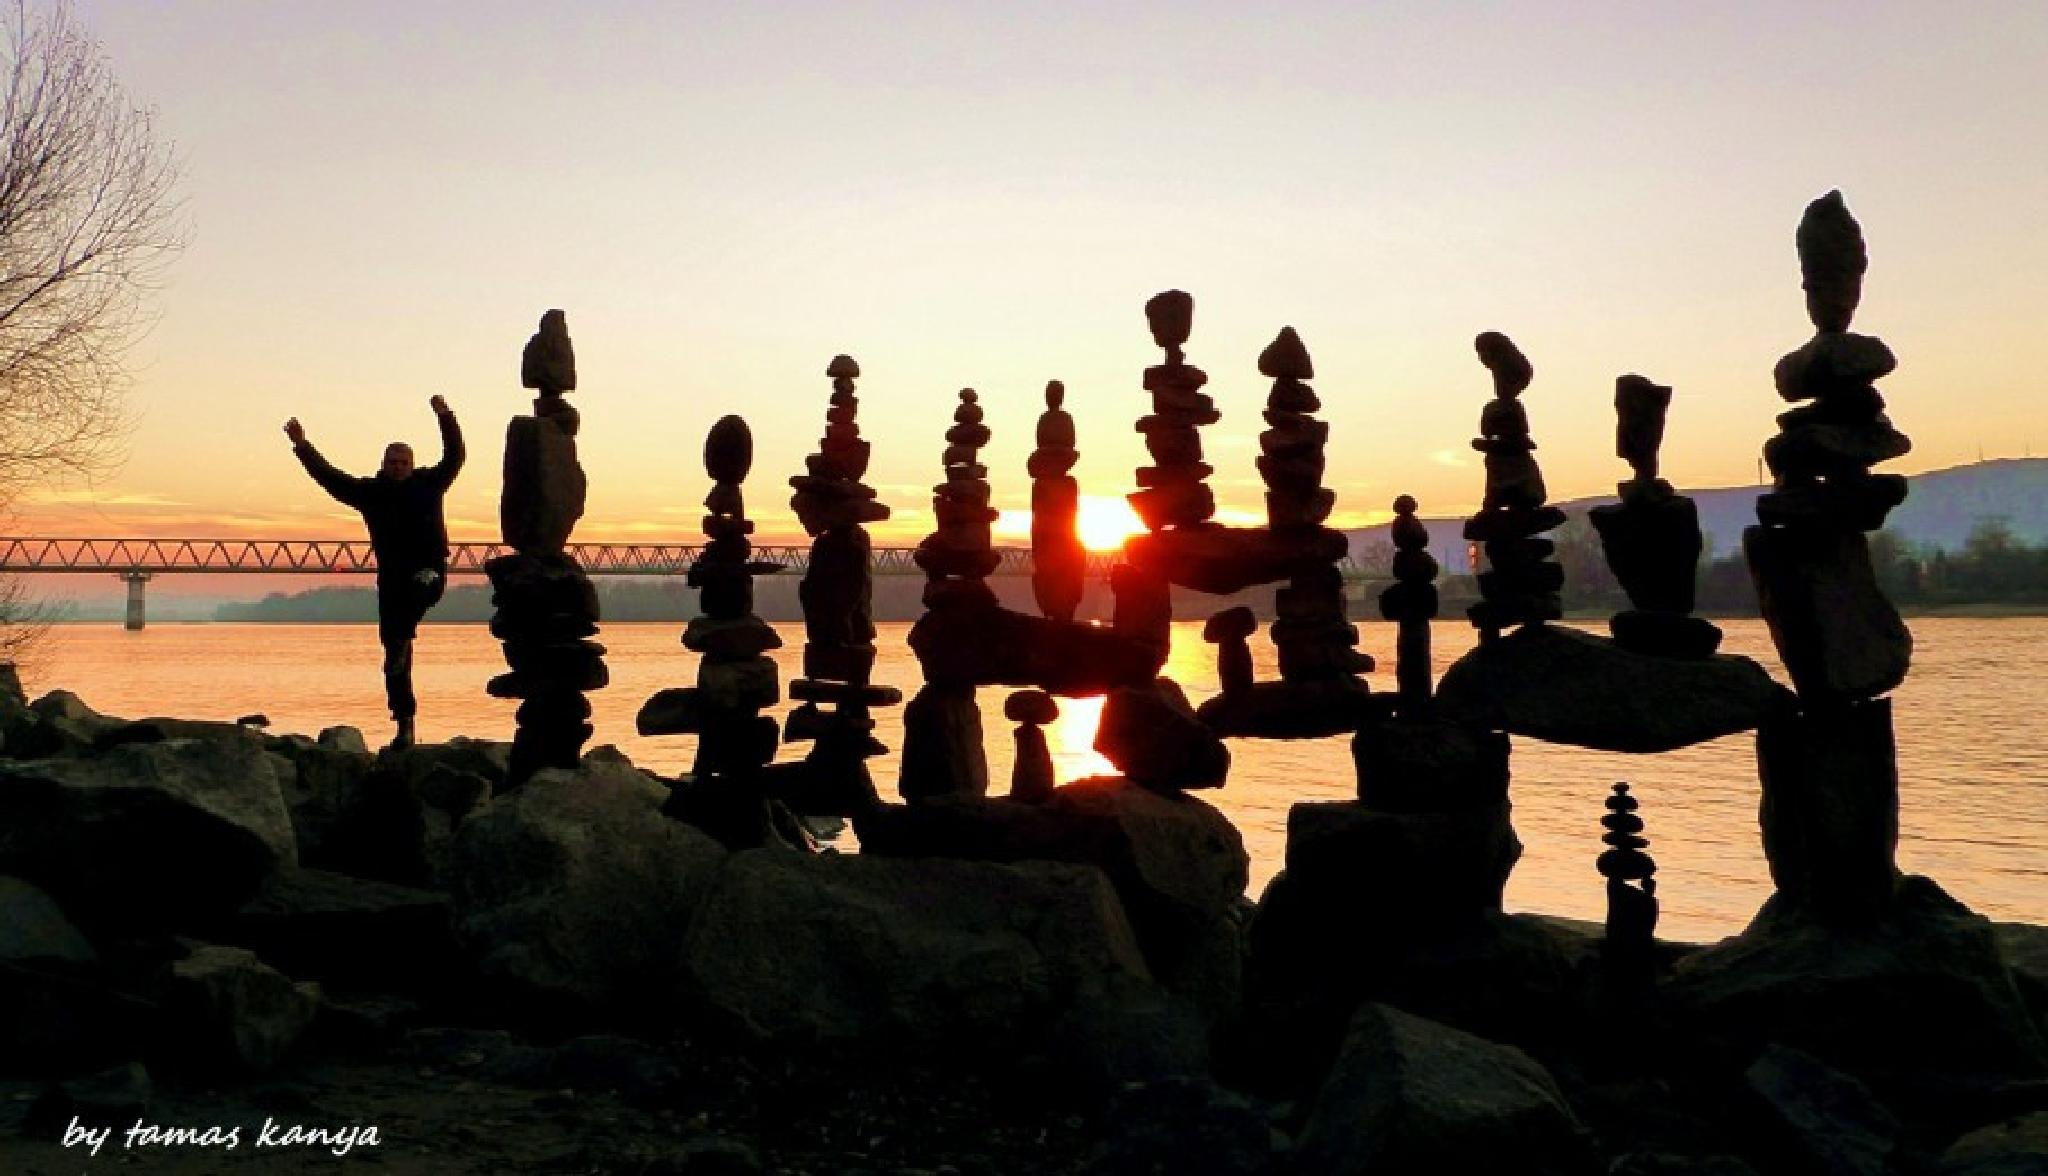 Stone balance in the sunset in Hungary by kanya by Tamas Kanya